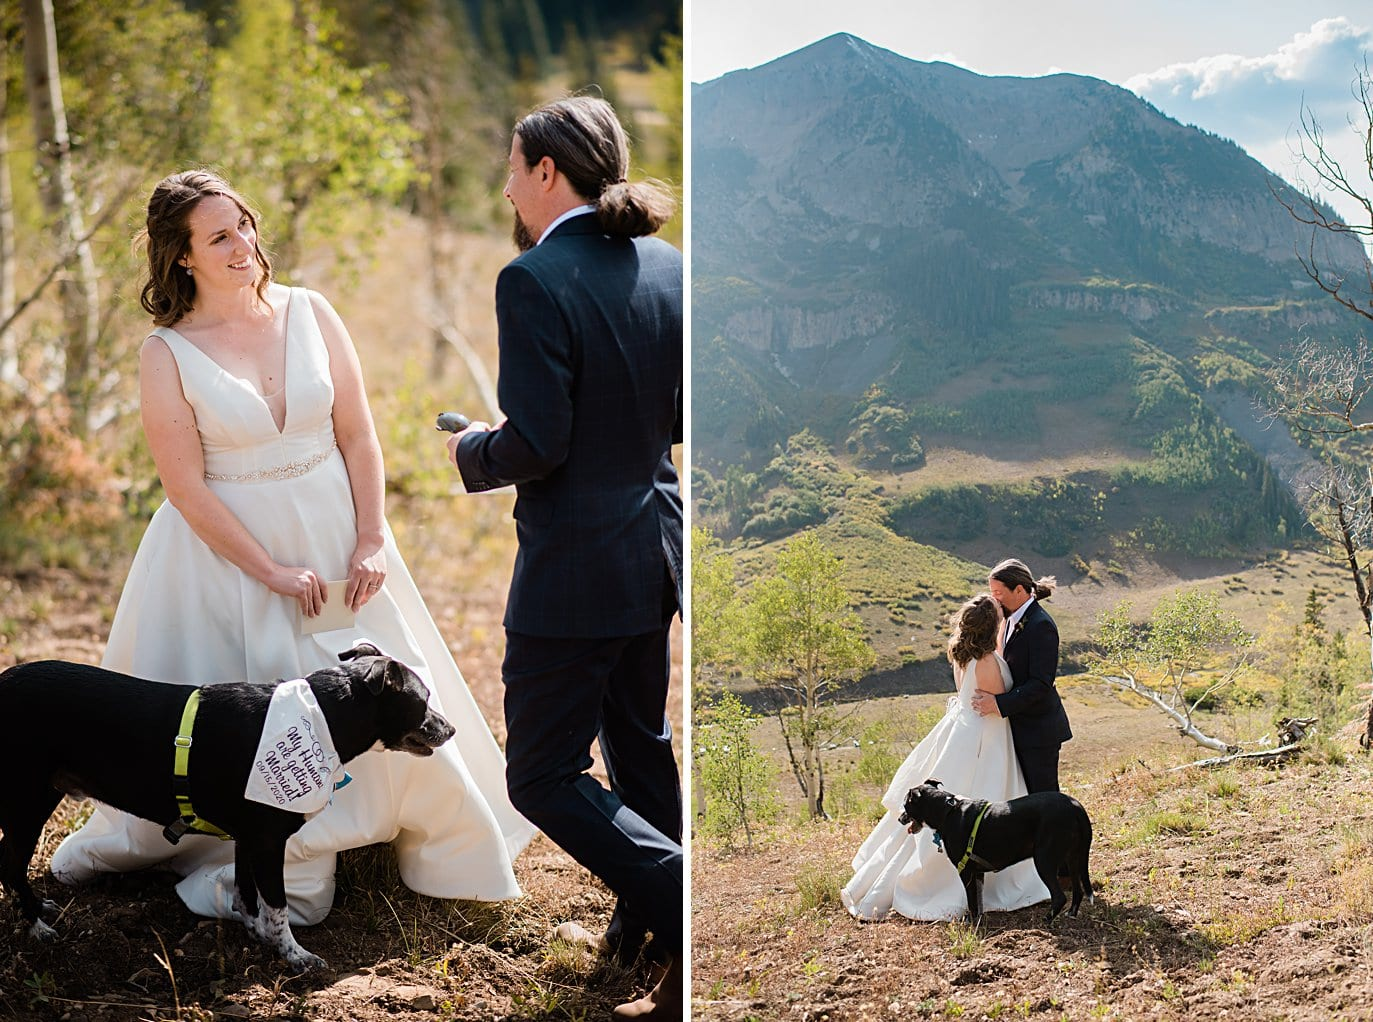 bride and groom exchange vows and kisses during ceremony in Crested Butte for private elopement by Aspen wedding photographer Jennie Crate